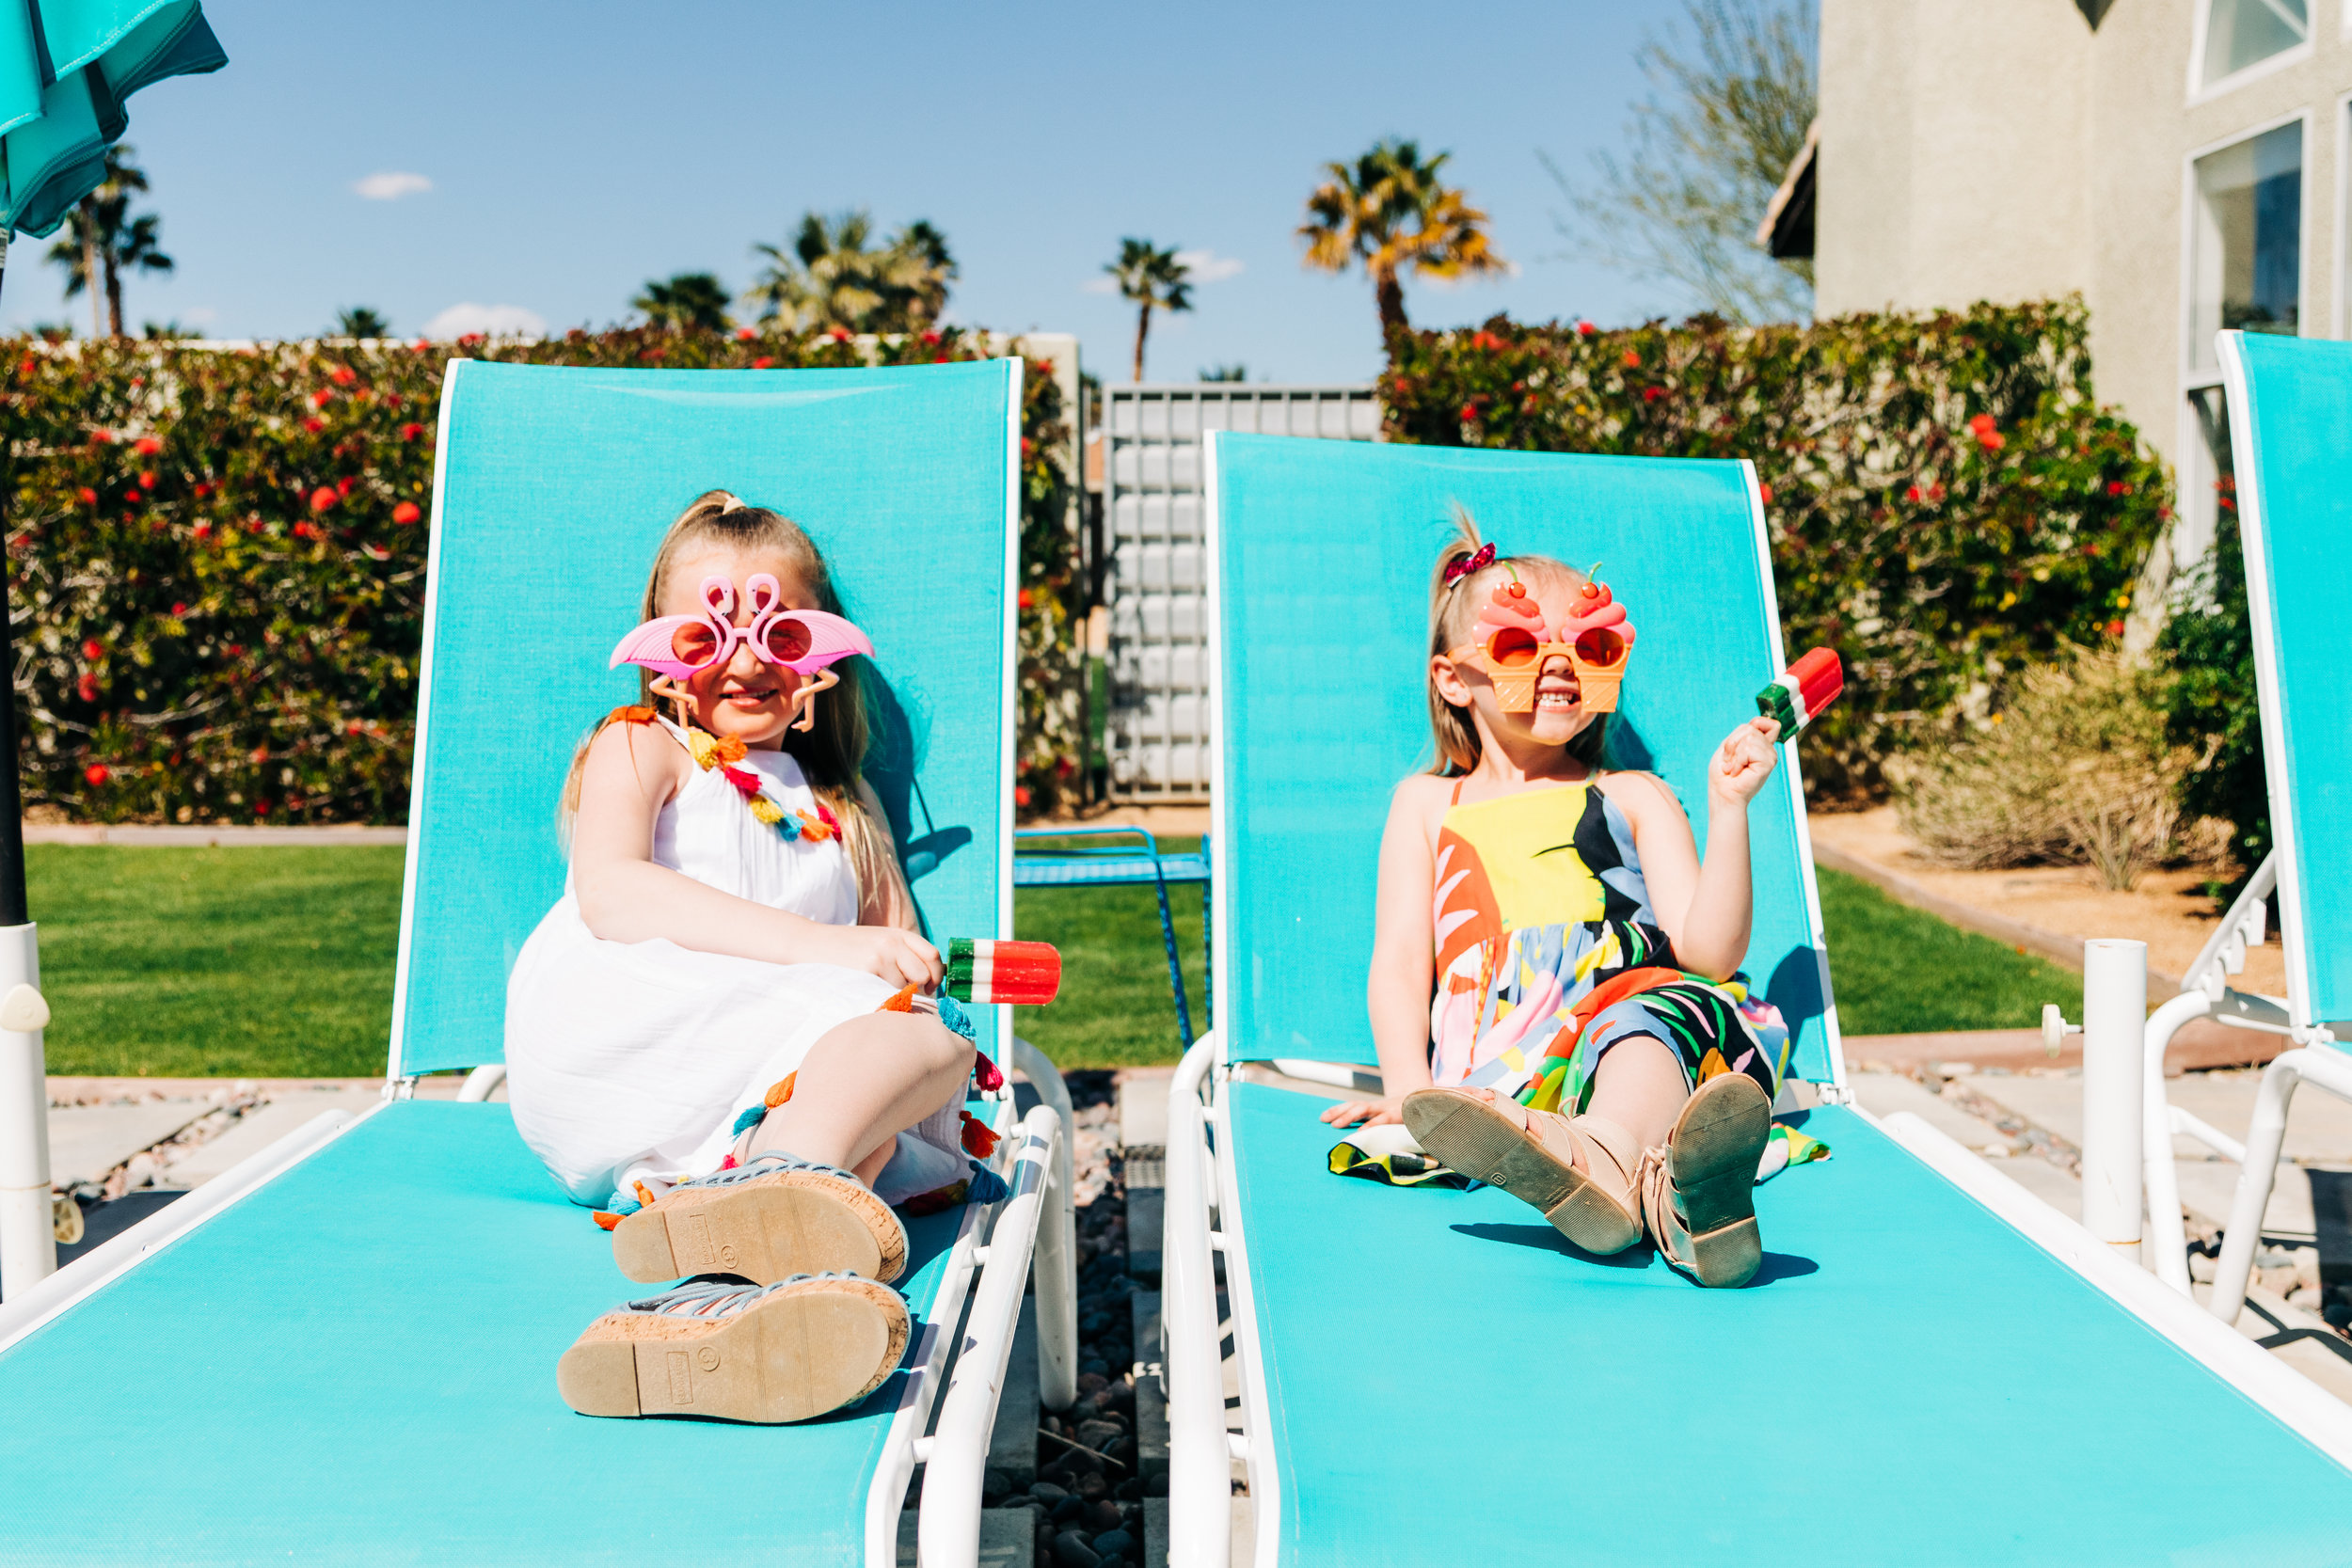 Photo by: Shoot My Travel Photographer Jamie in Palm Springs.